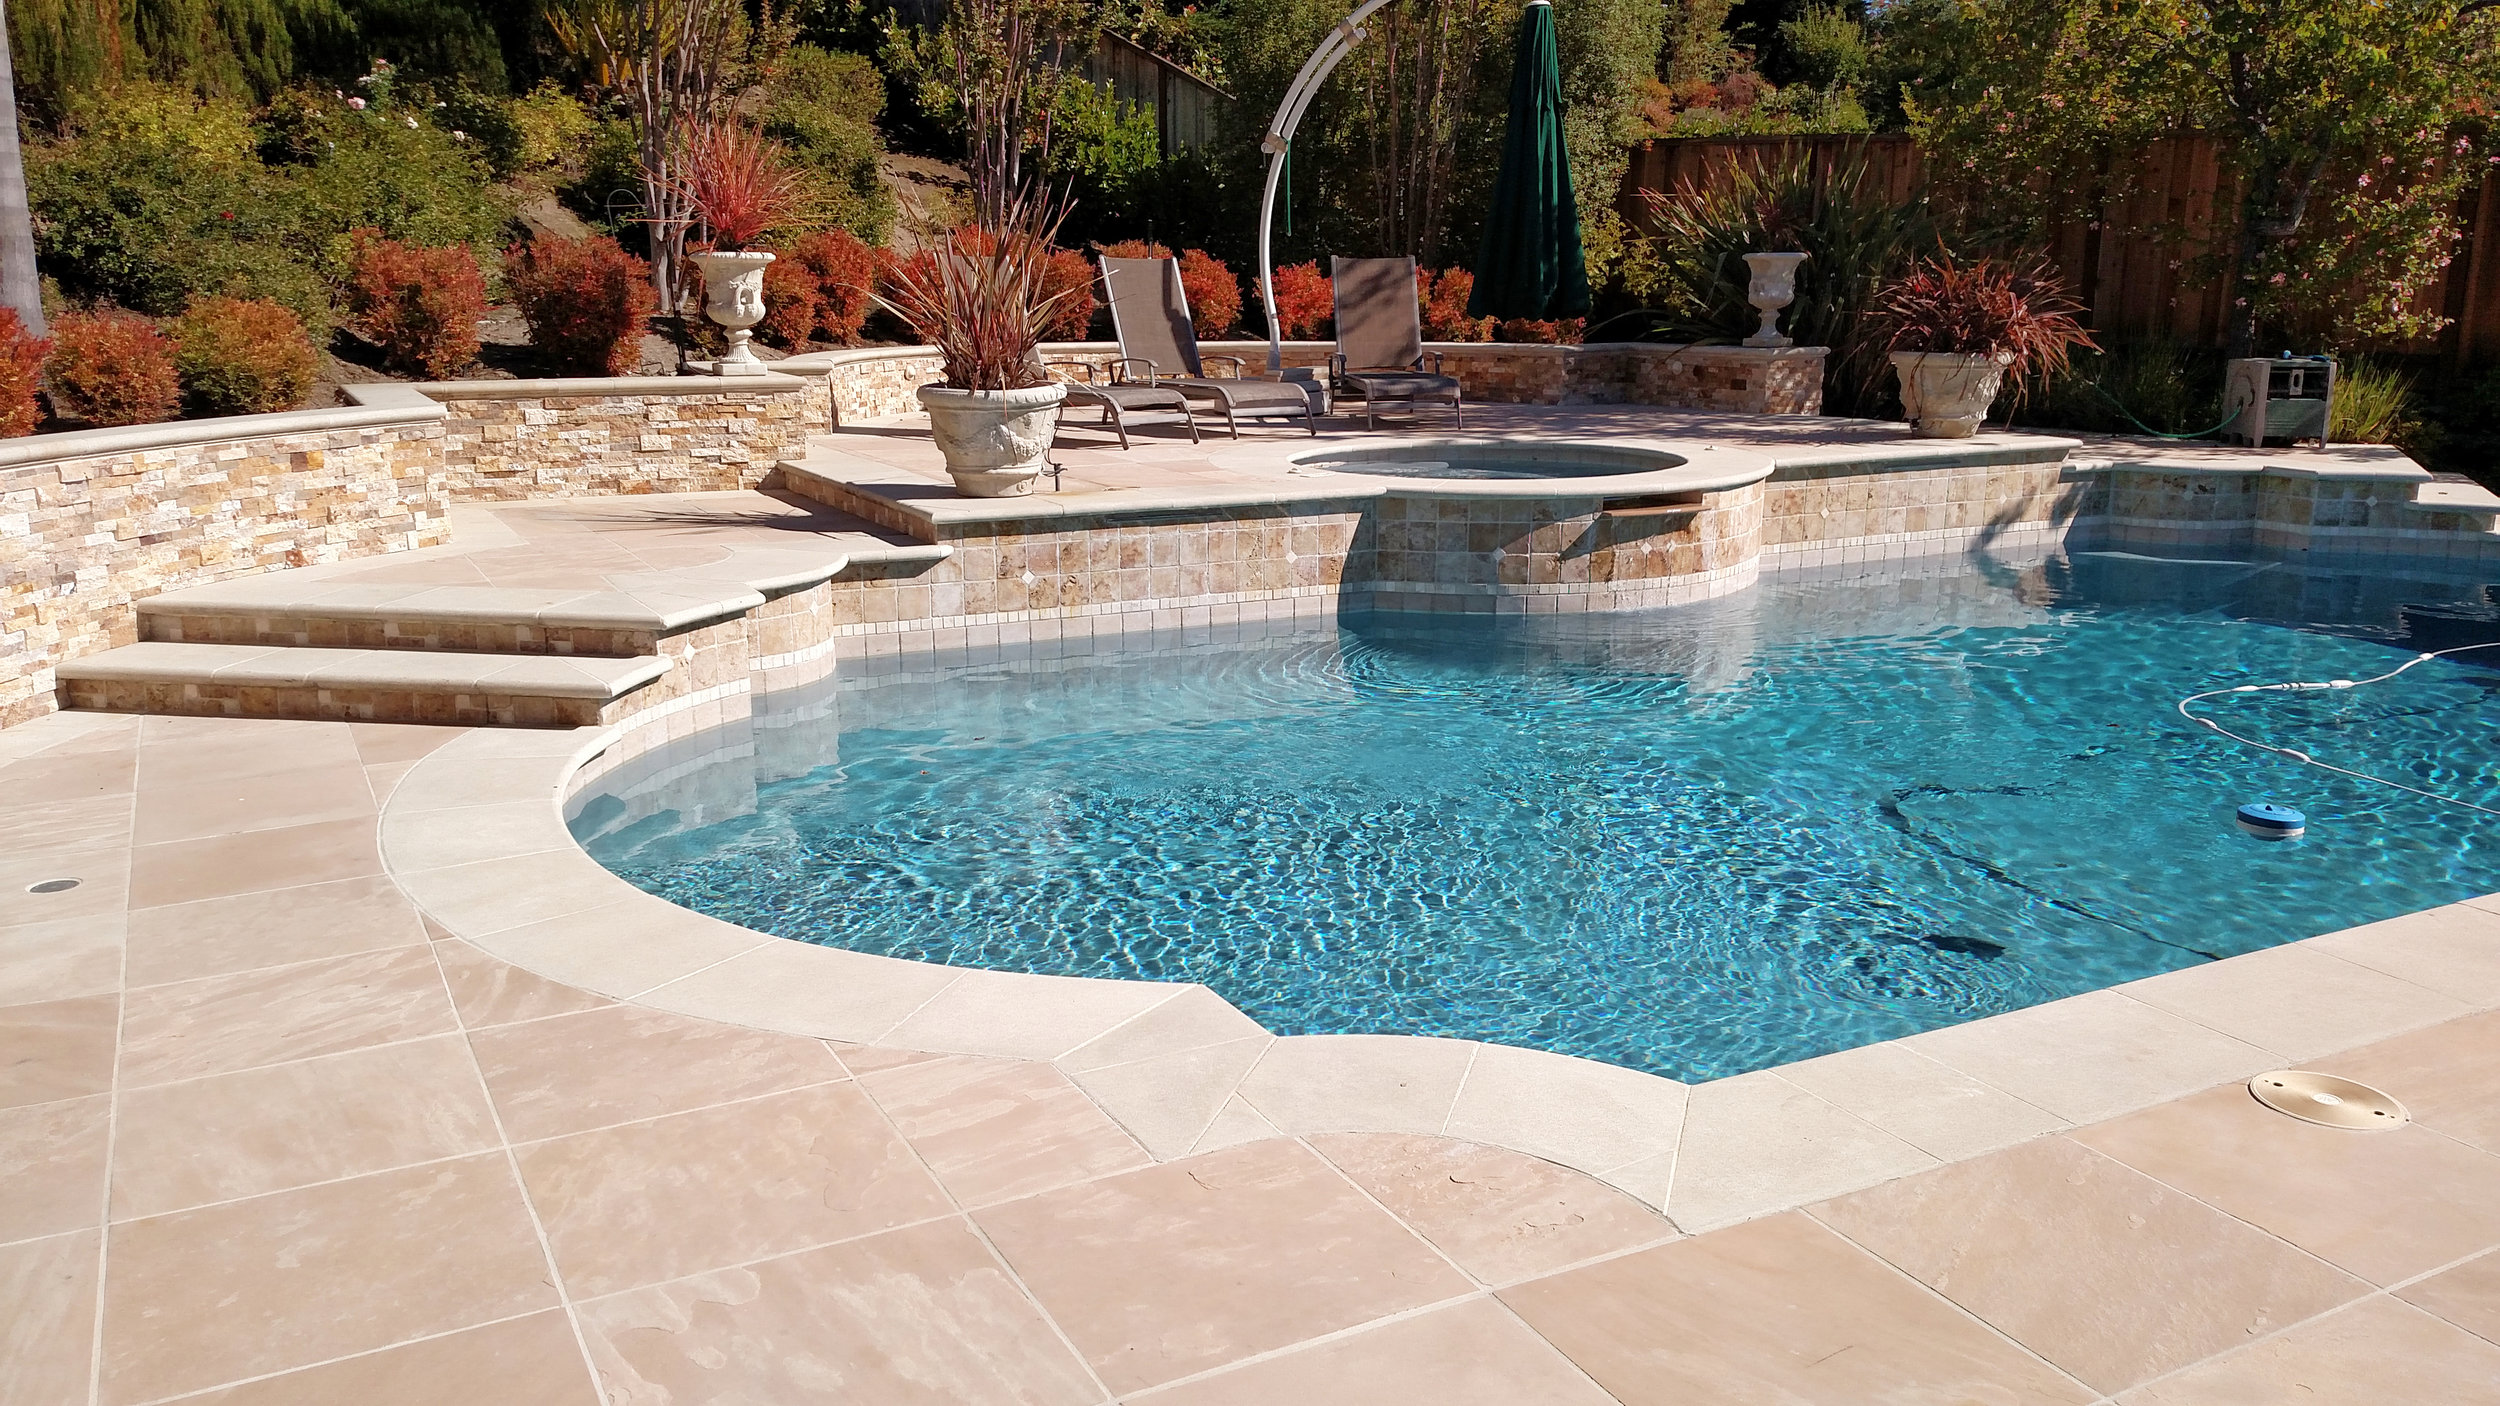 HARDSCAPE - Stamped concrete, custom rock walls, patios, walkways and more.